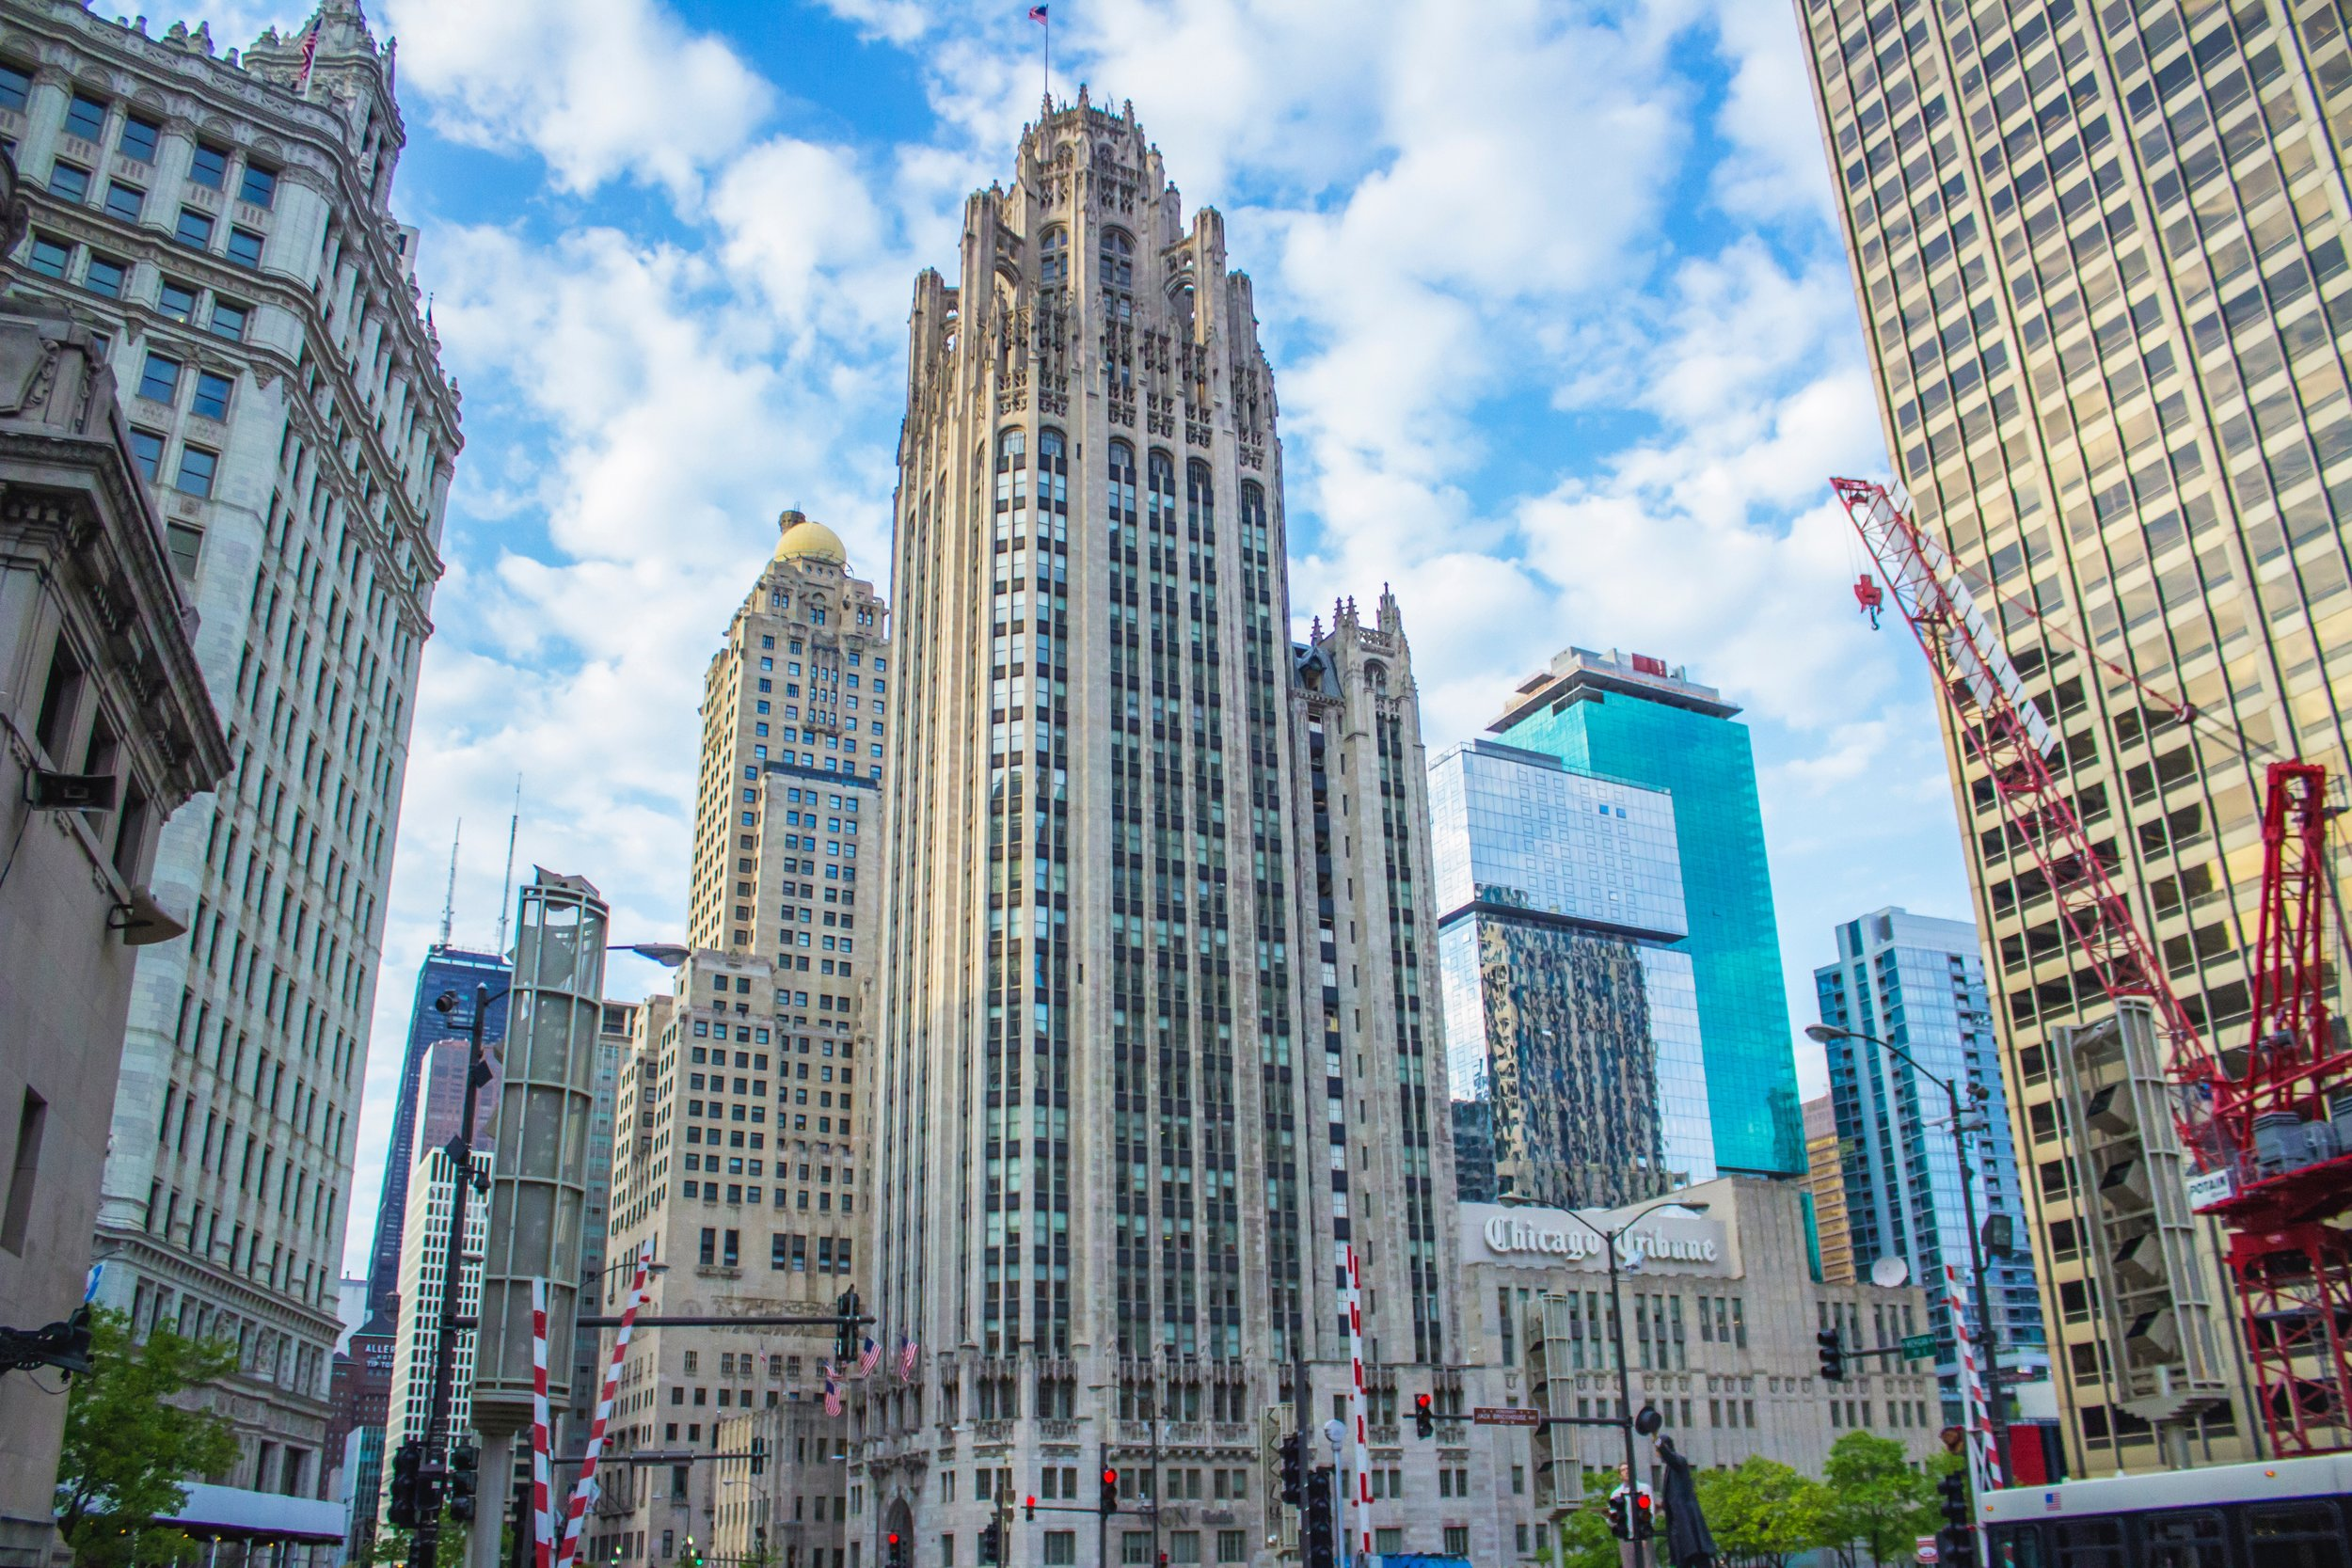 Our Practice - We're a small firm based just outside of Chicago lead by experts in international trade and transport, and in doing business around the globe.